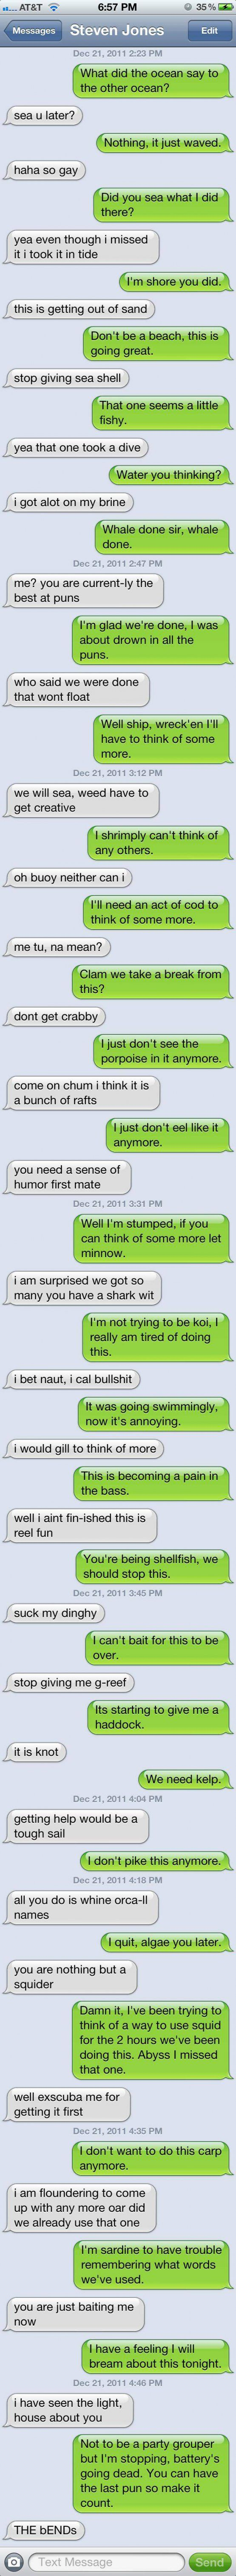 Awesome text exchange! :)